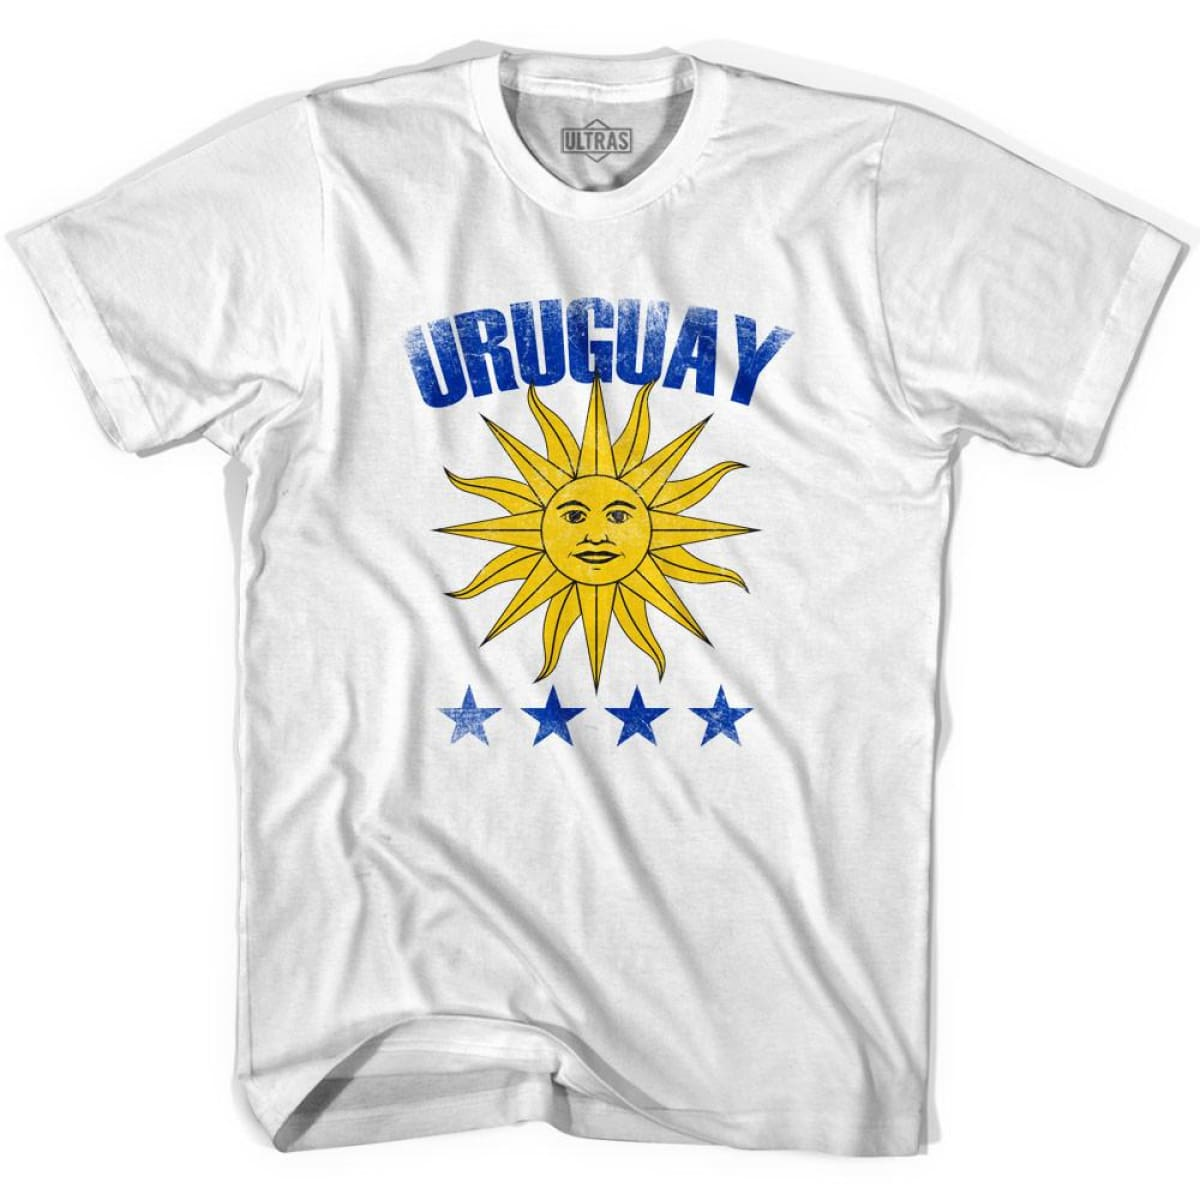 Ultras Uruguay 4 World Cups Ultras Soccer T-shirt - White / Youth X-Small - Ultras Club Soccer T-shirt